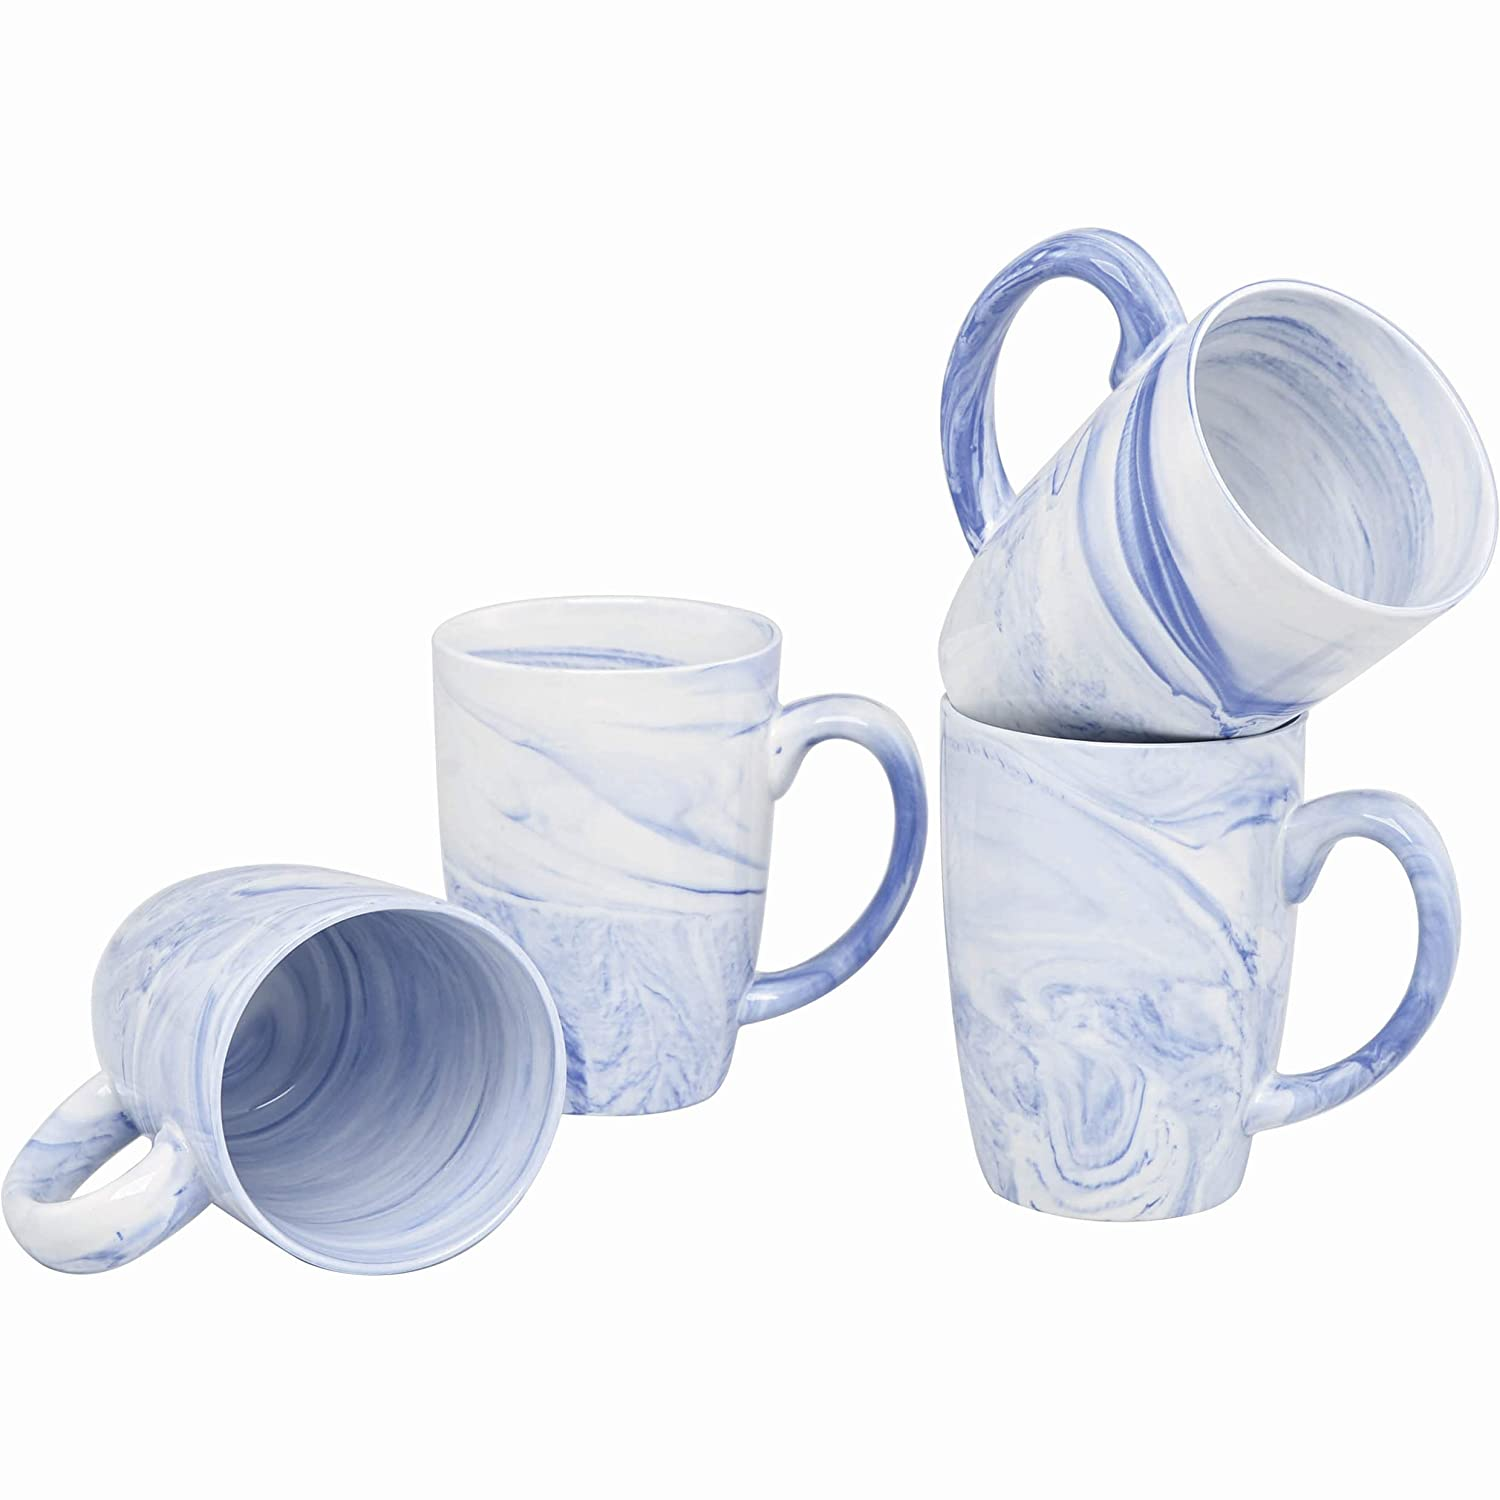 Culver 16-Ounce Palermo Ceramic Mug Set of 4 (White and Blue Marbleized)